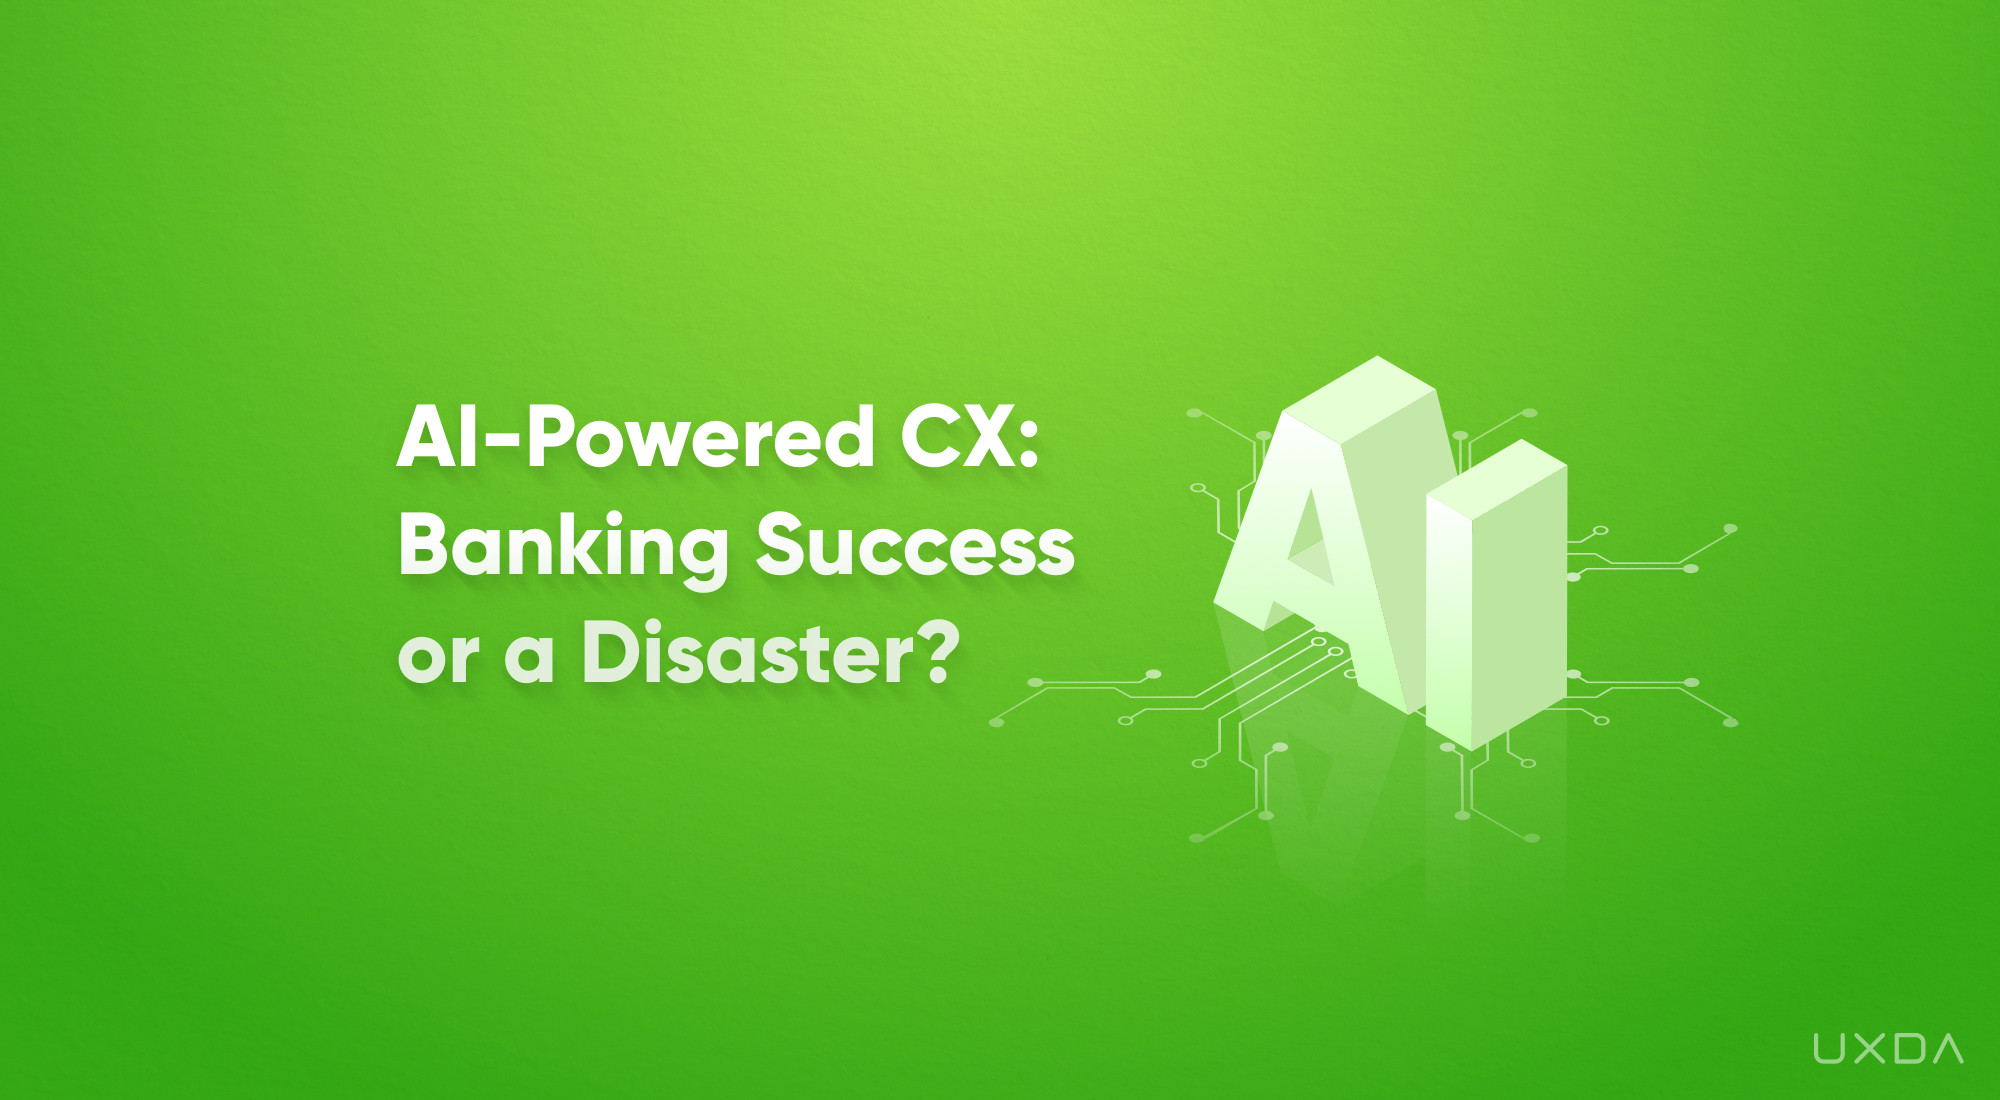 One Condition that Determines Whether AI-Powered Contextual CX Becomes a Digital Banking Success or a Disaster